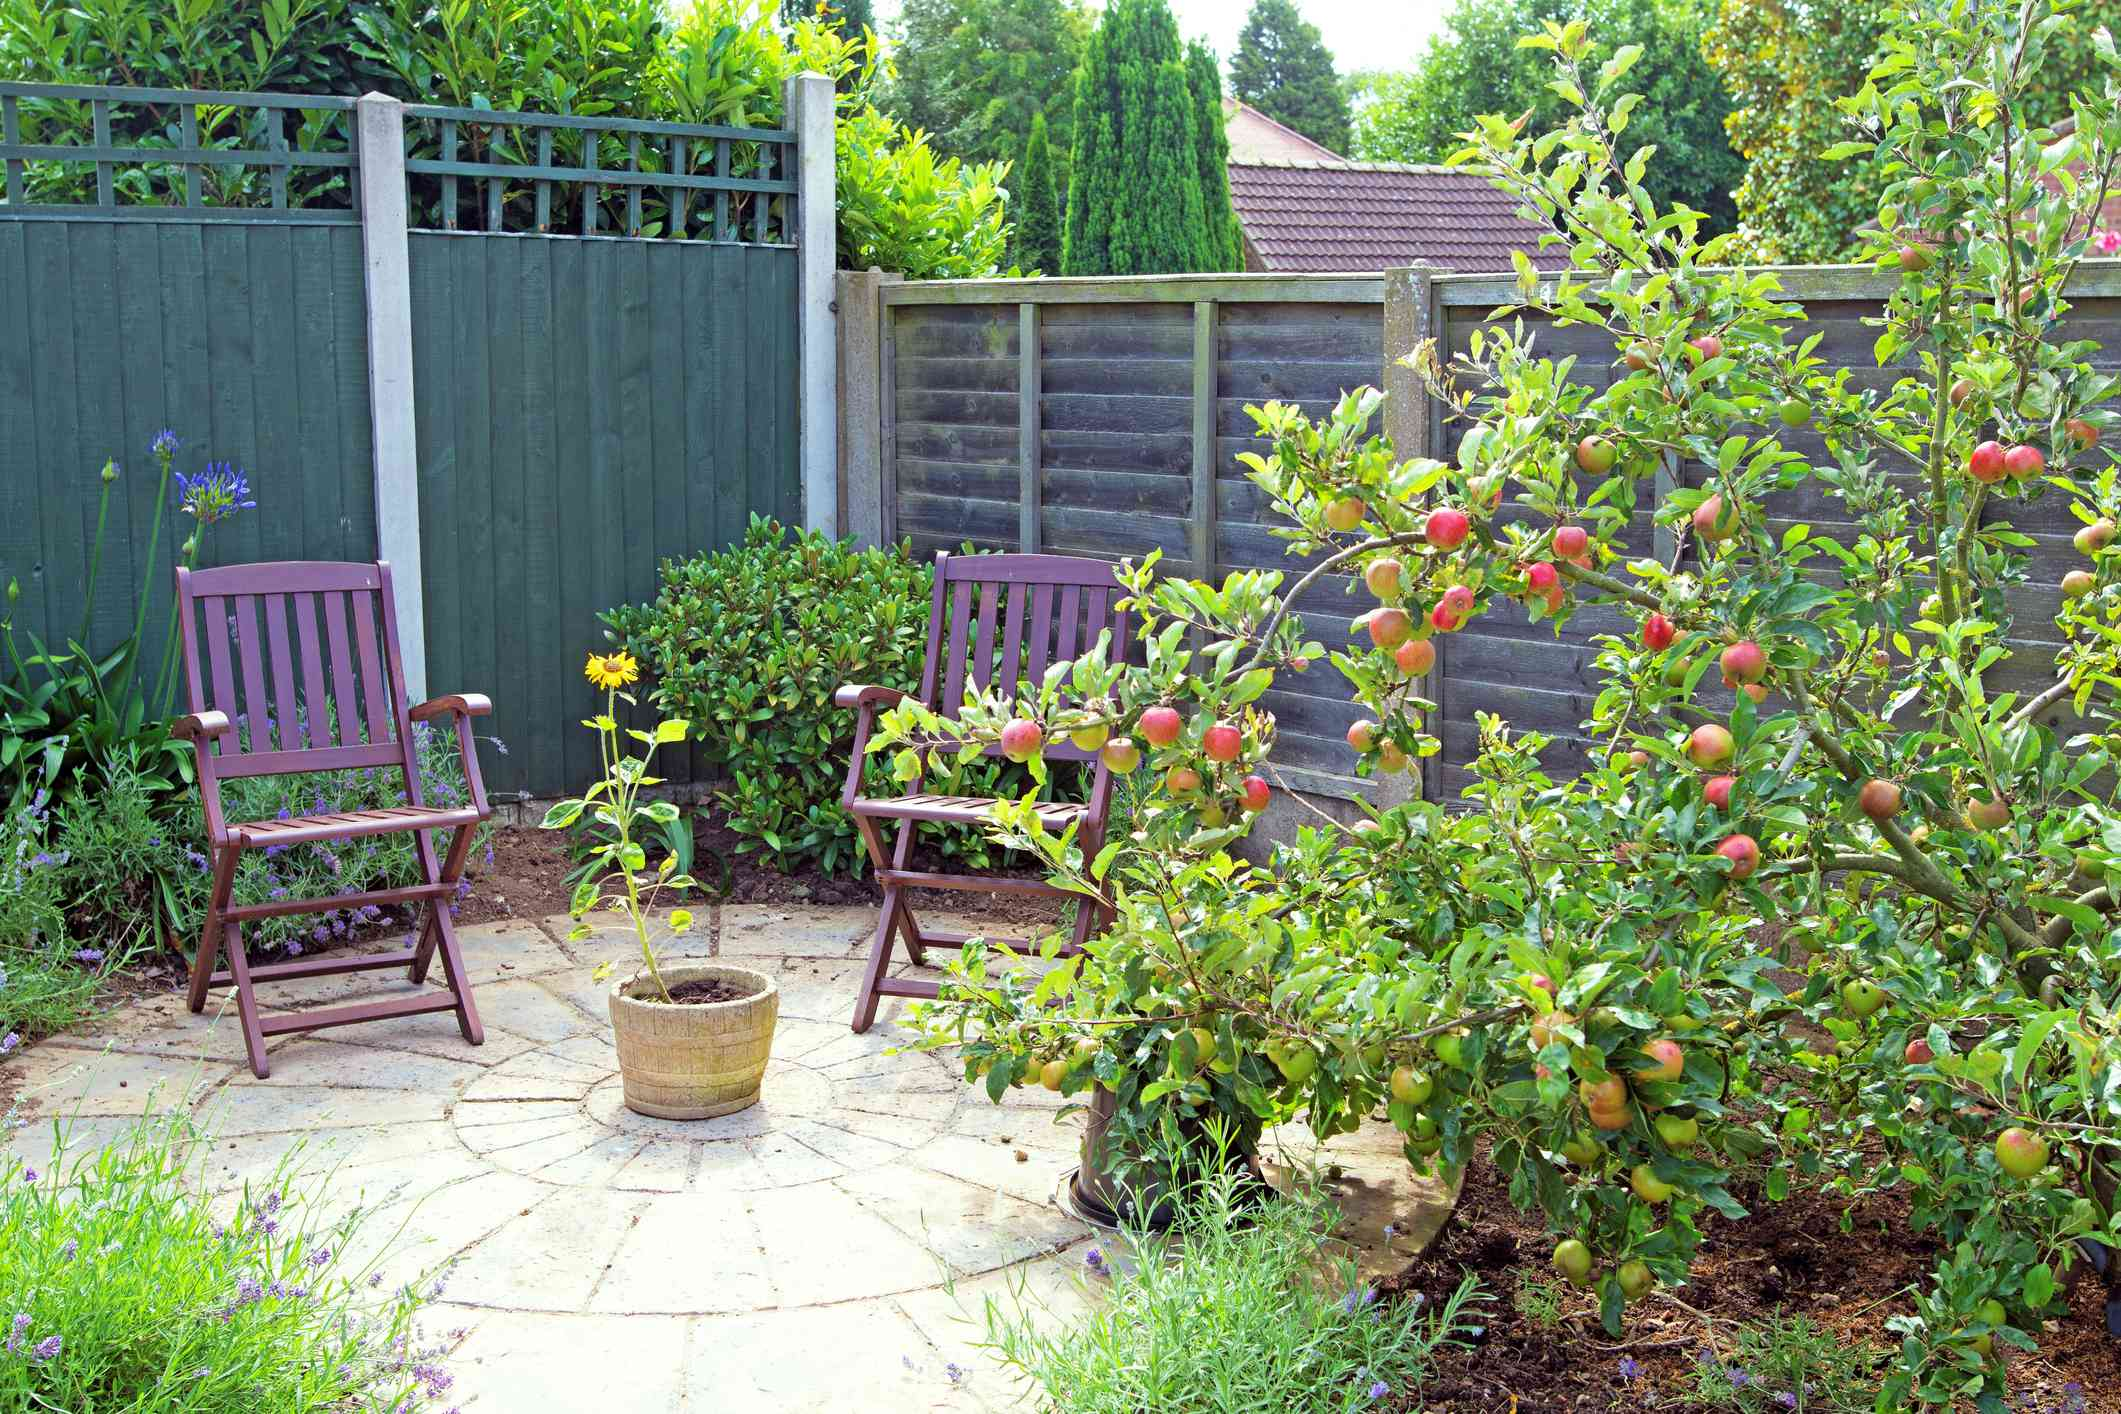 An apple tree in a small garden with a patio.